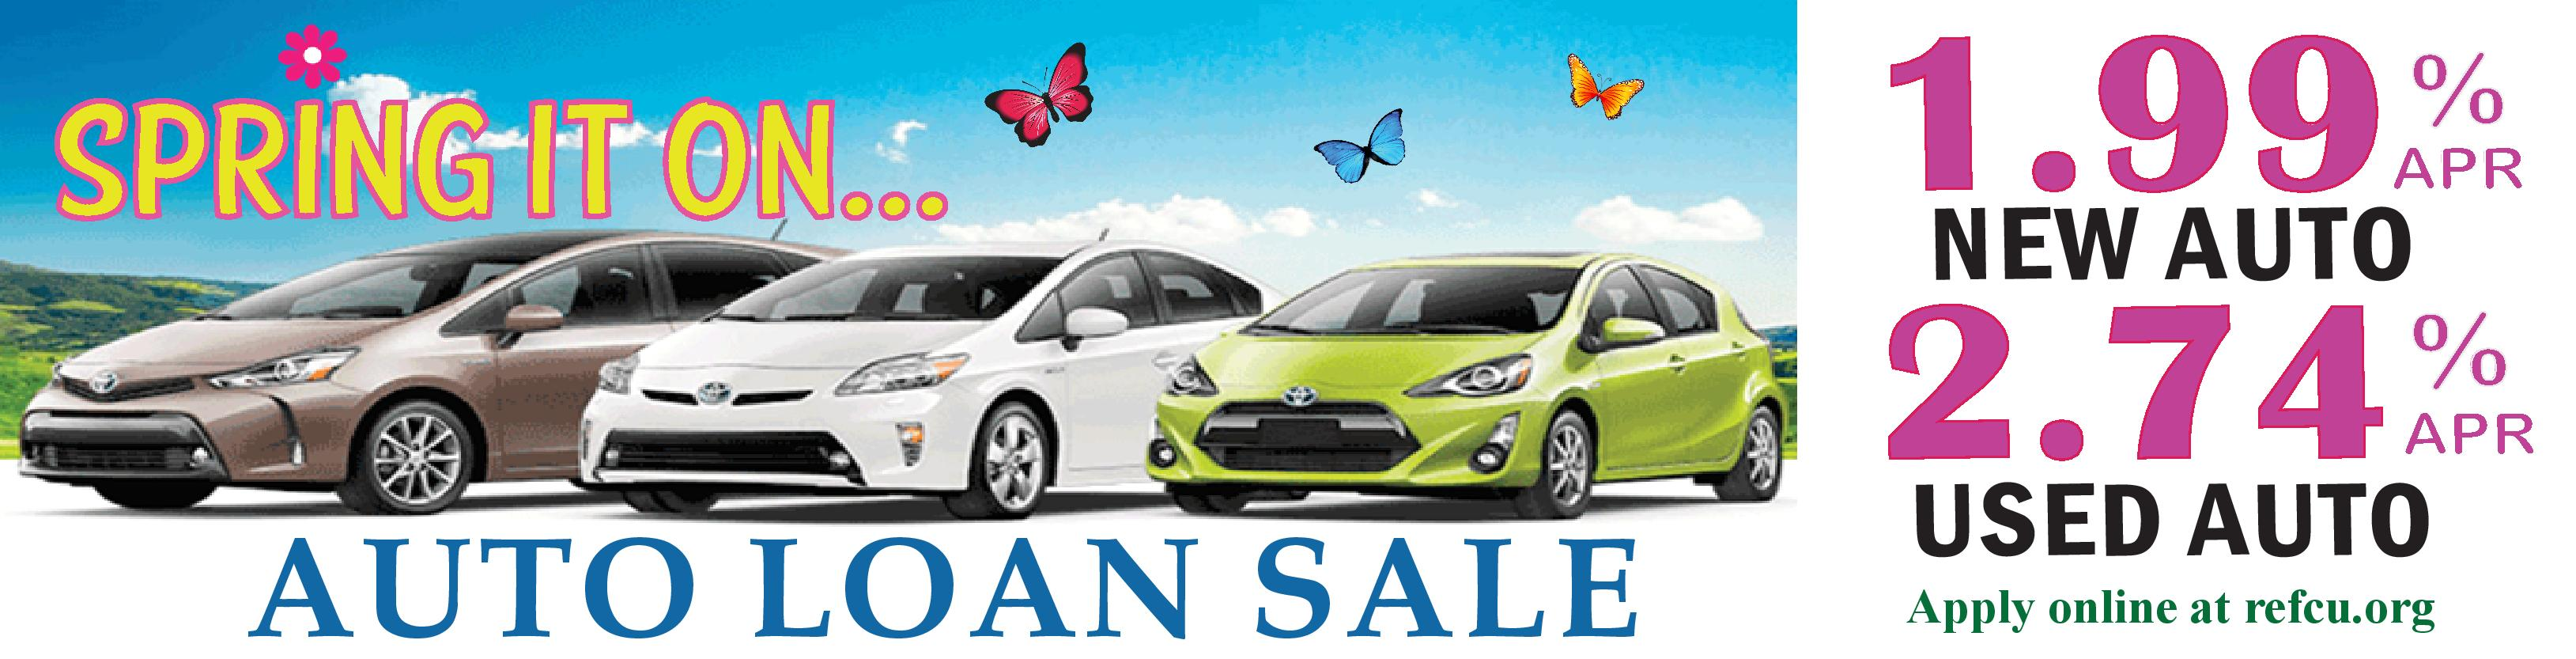 Spring it on loan sale. Rates as low as 2.24%